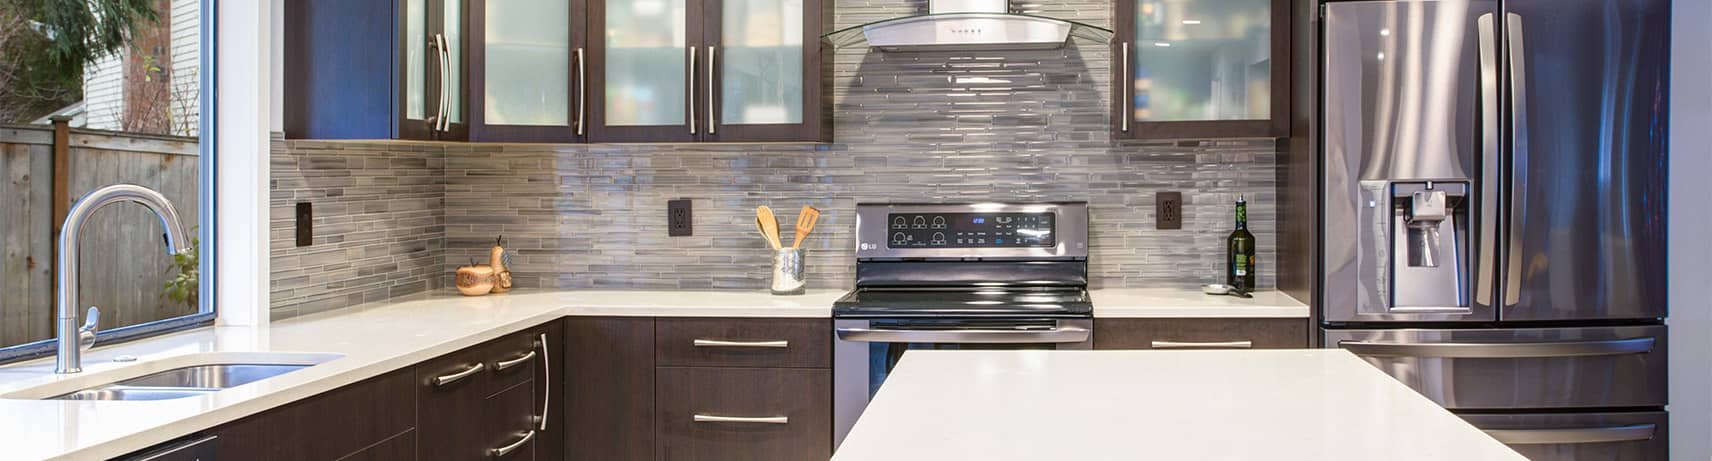 Crofton General Contractor, Commercial General Contractor and Home Remodeling Contractor